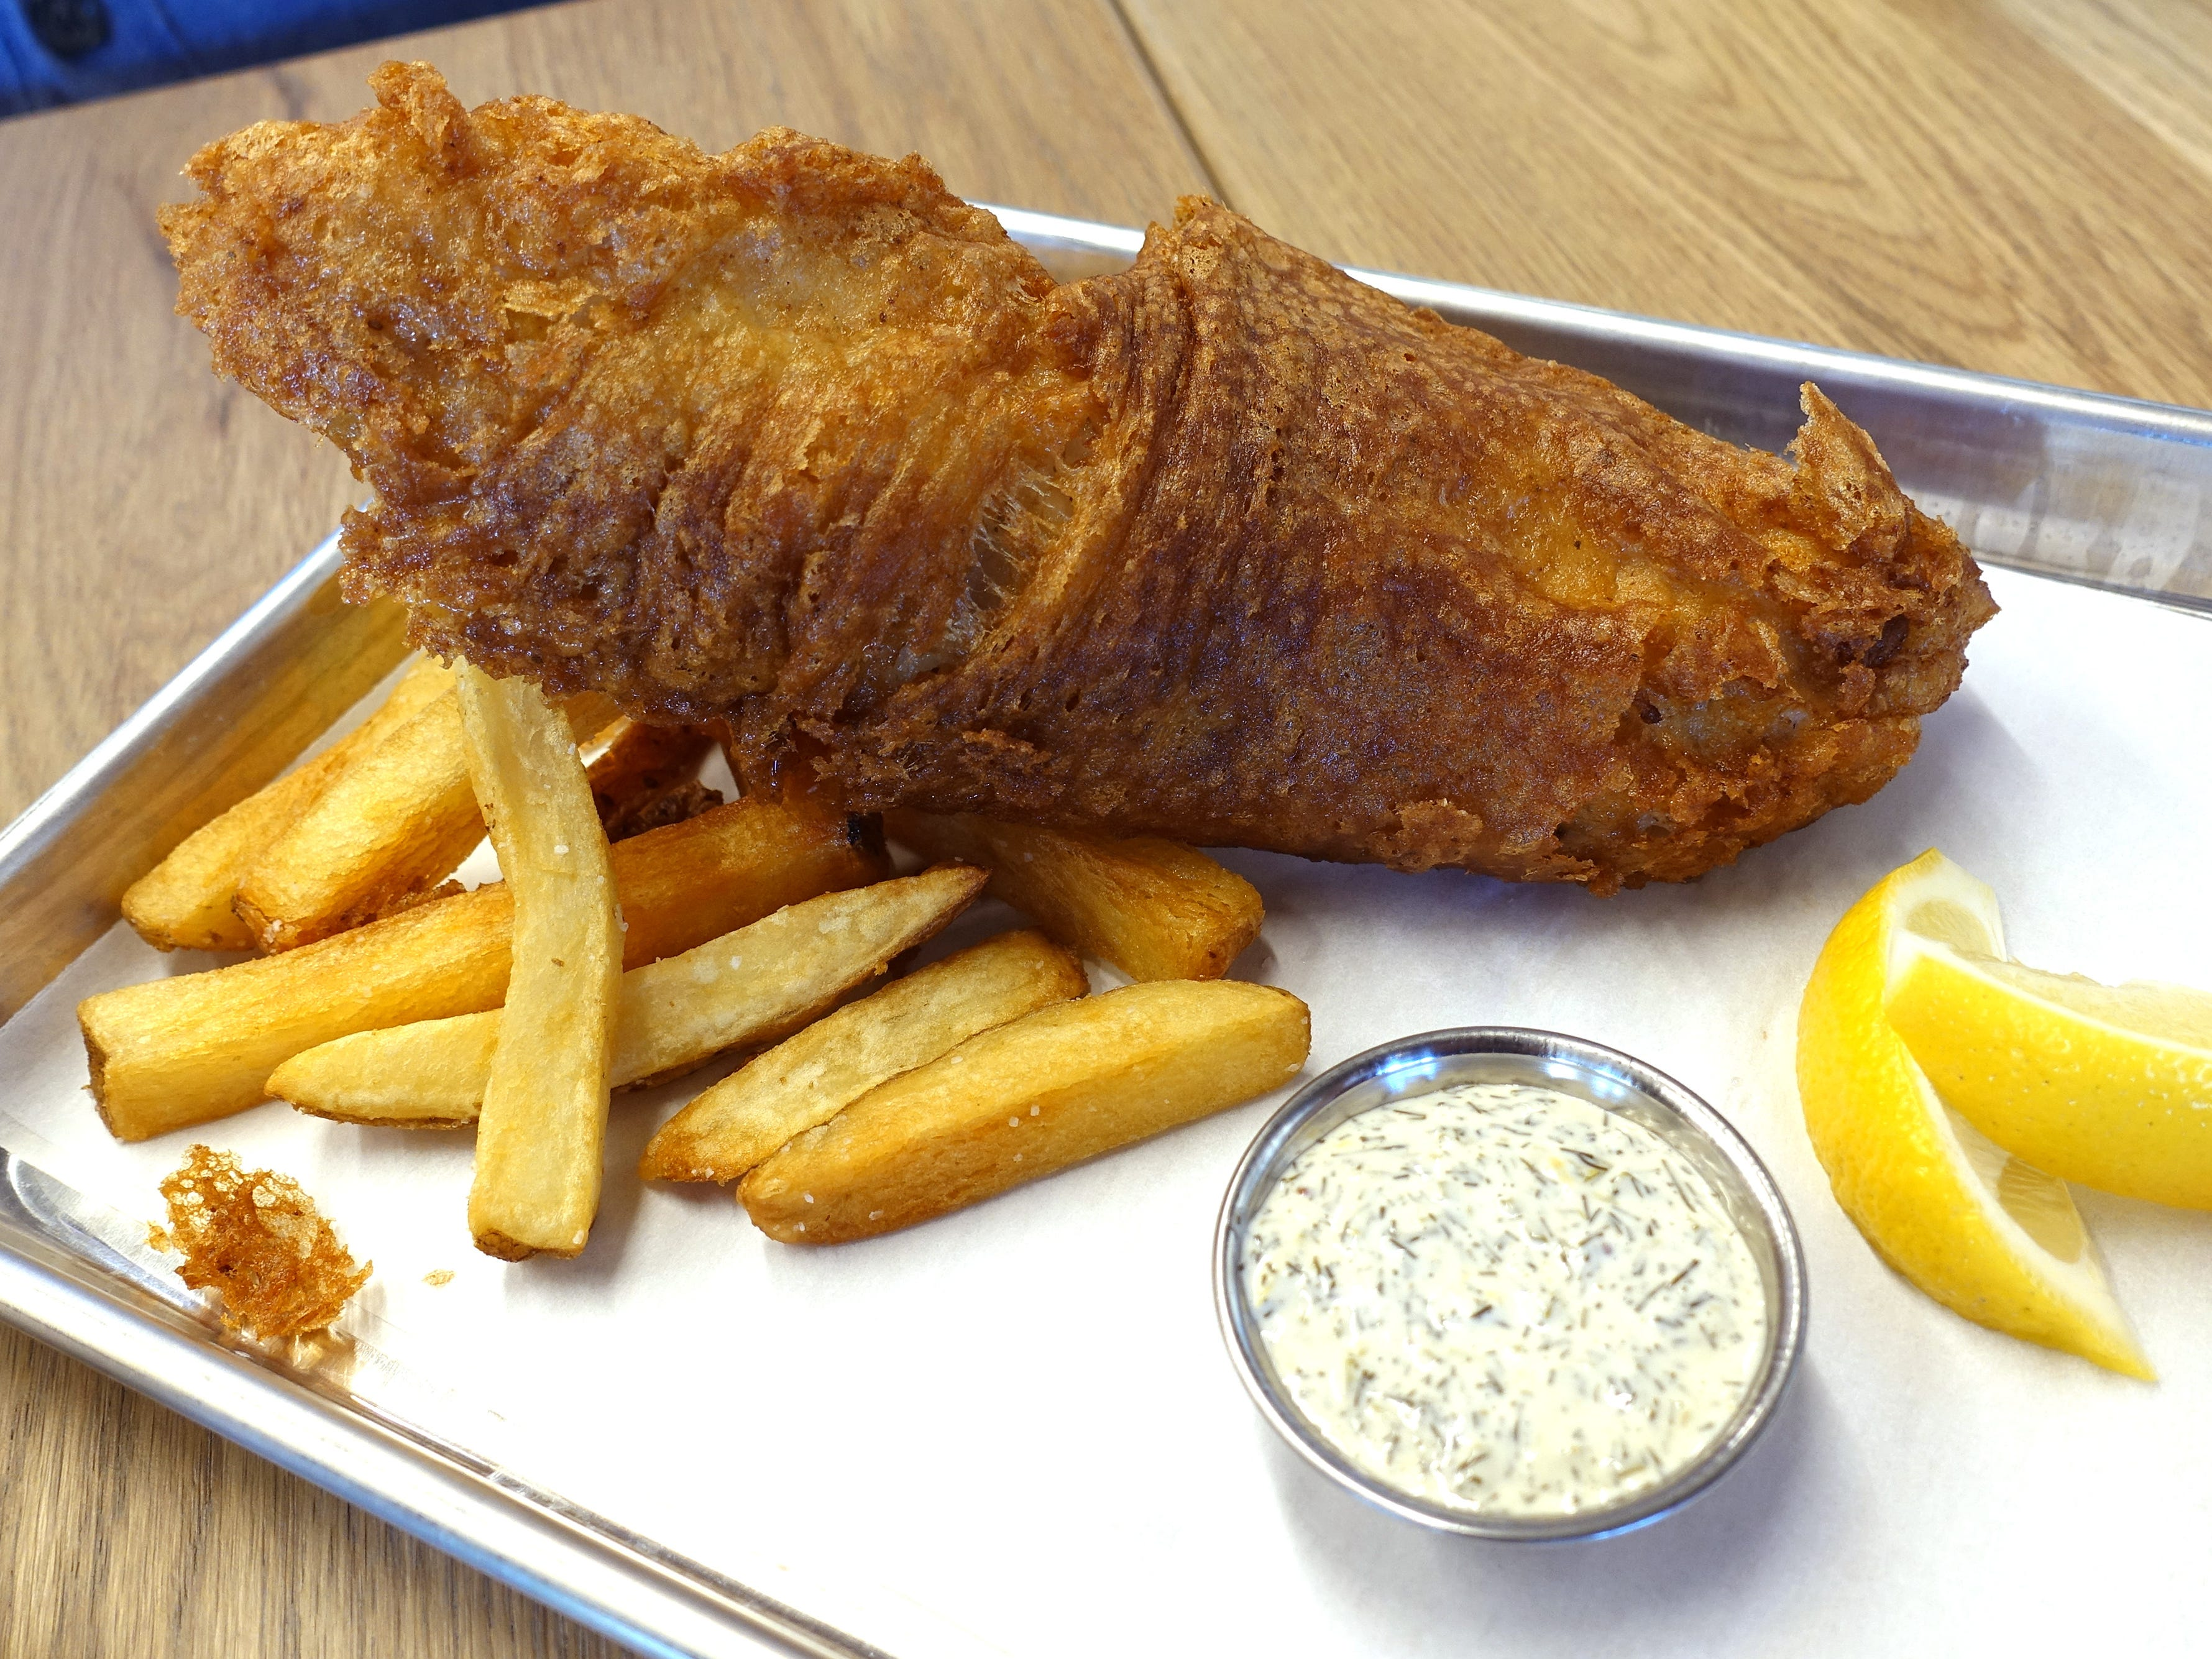 Fish and chips: battered and fried rockfish with Frites Street fries and dill tartar sauce at Chula Seafood Uptown in Phoenix.